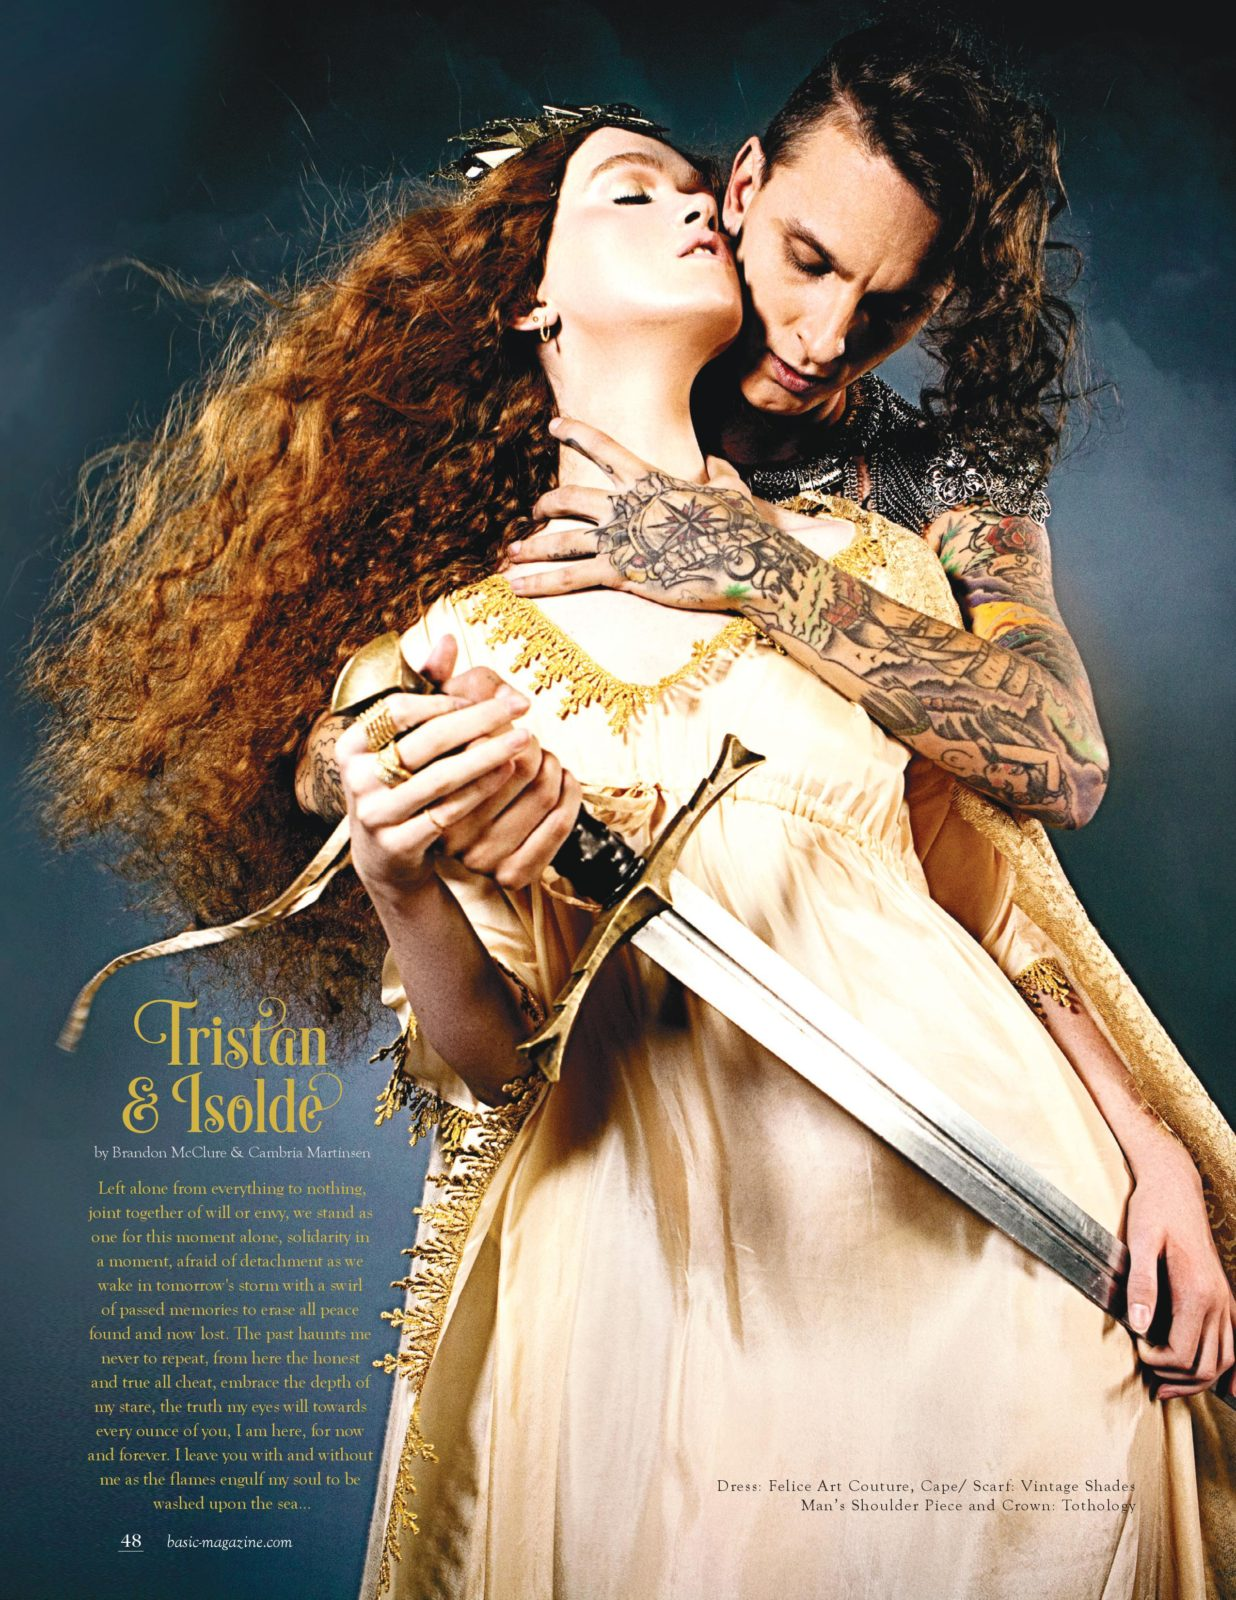 basic magazine love stories tristan and isolde